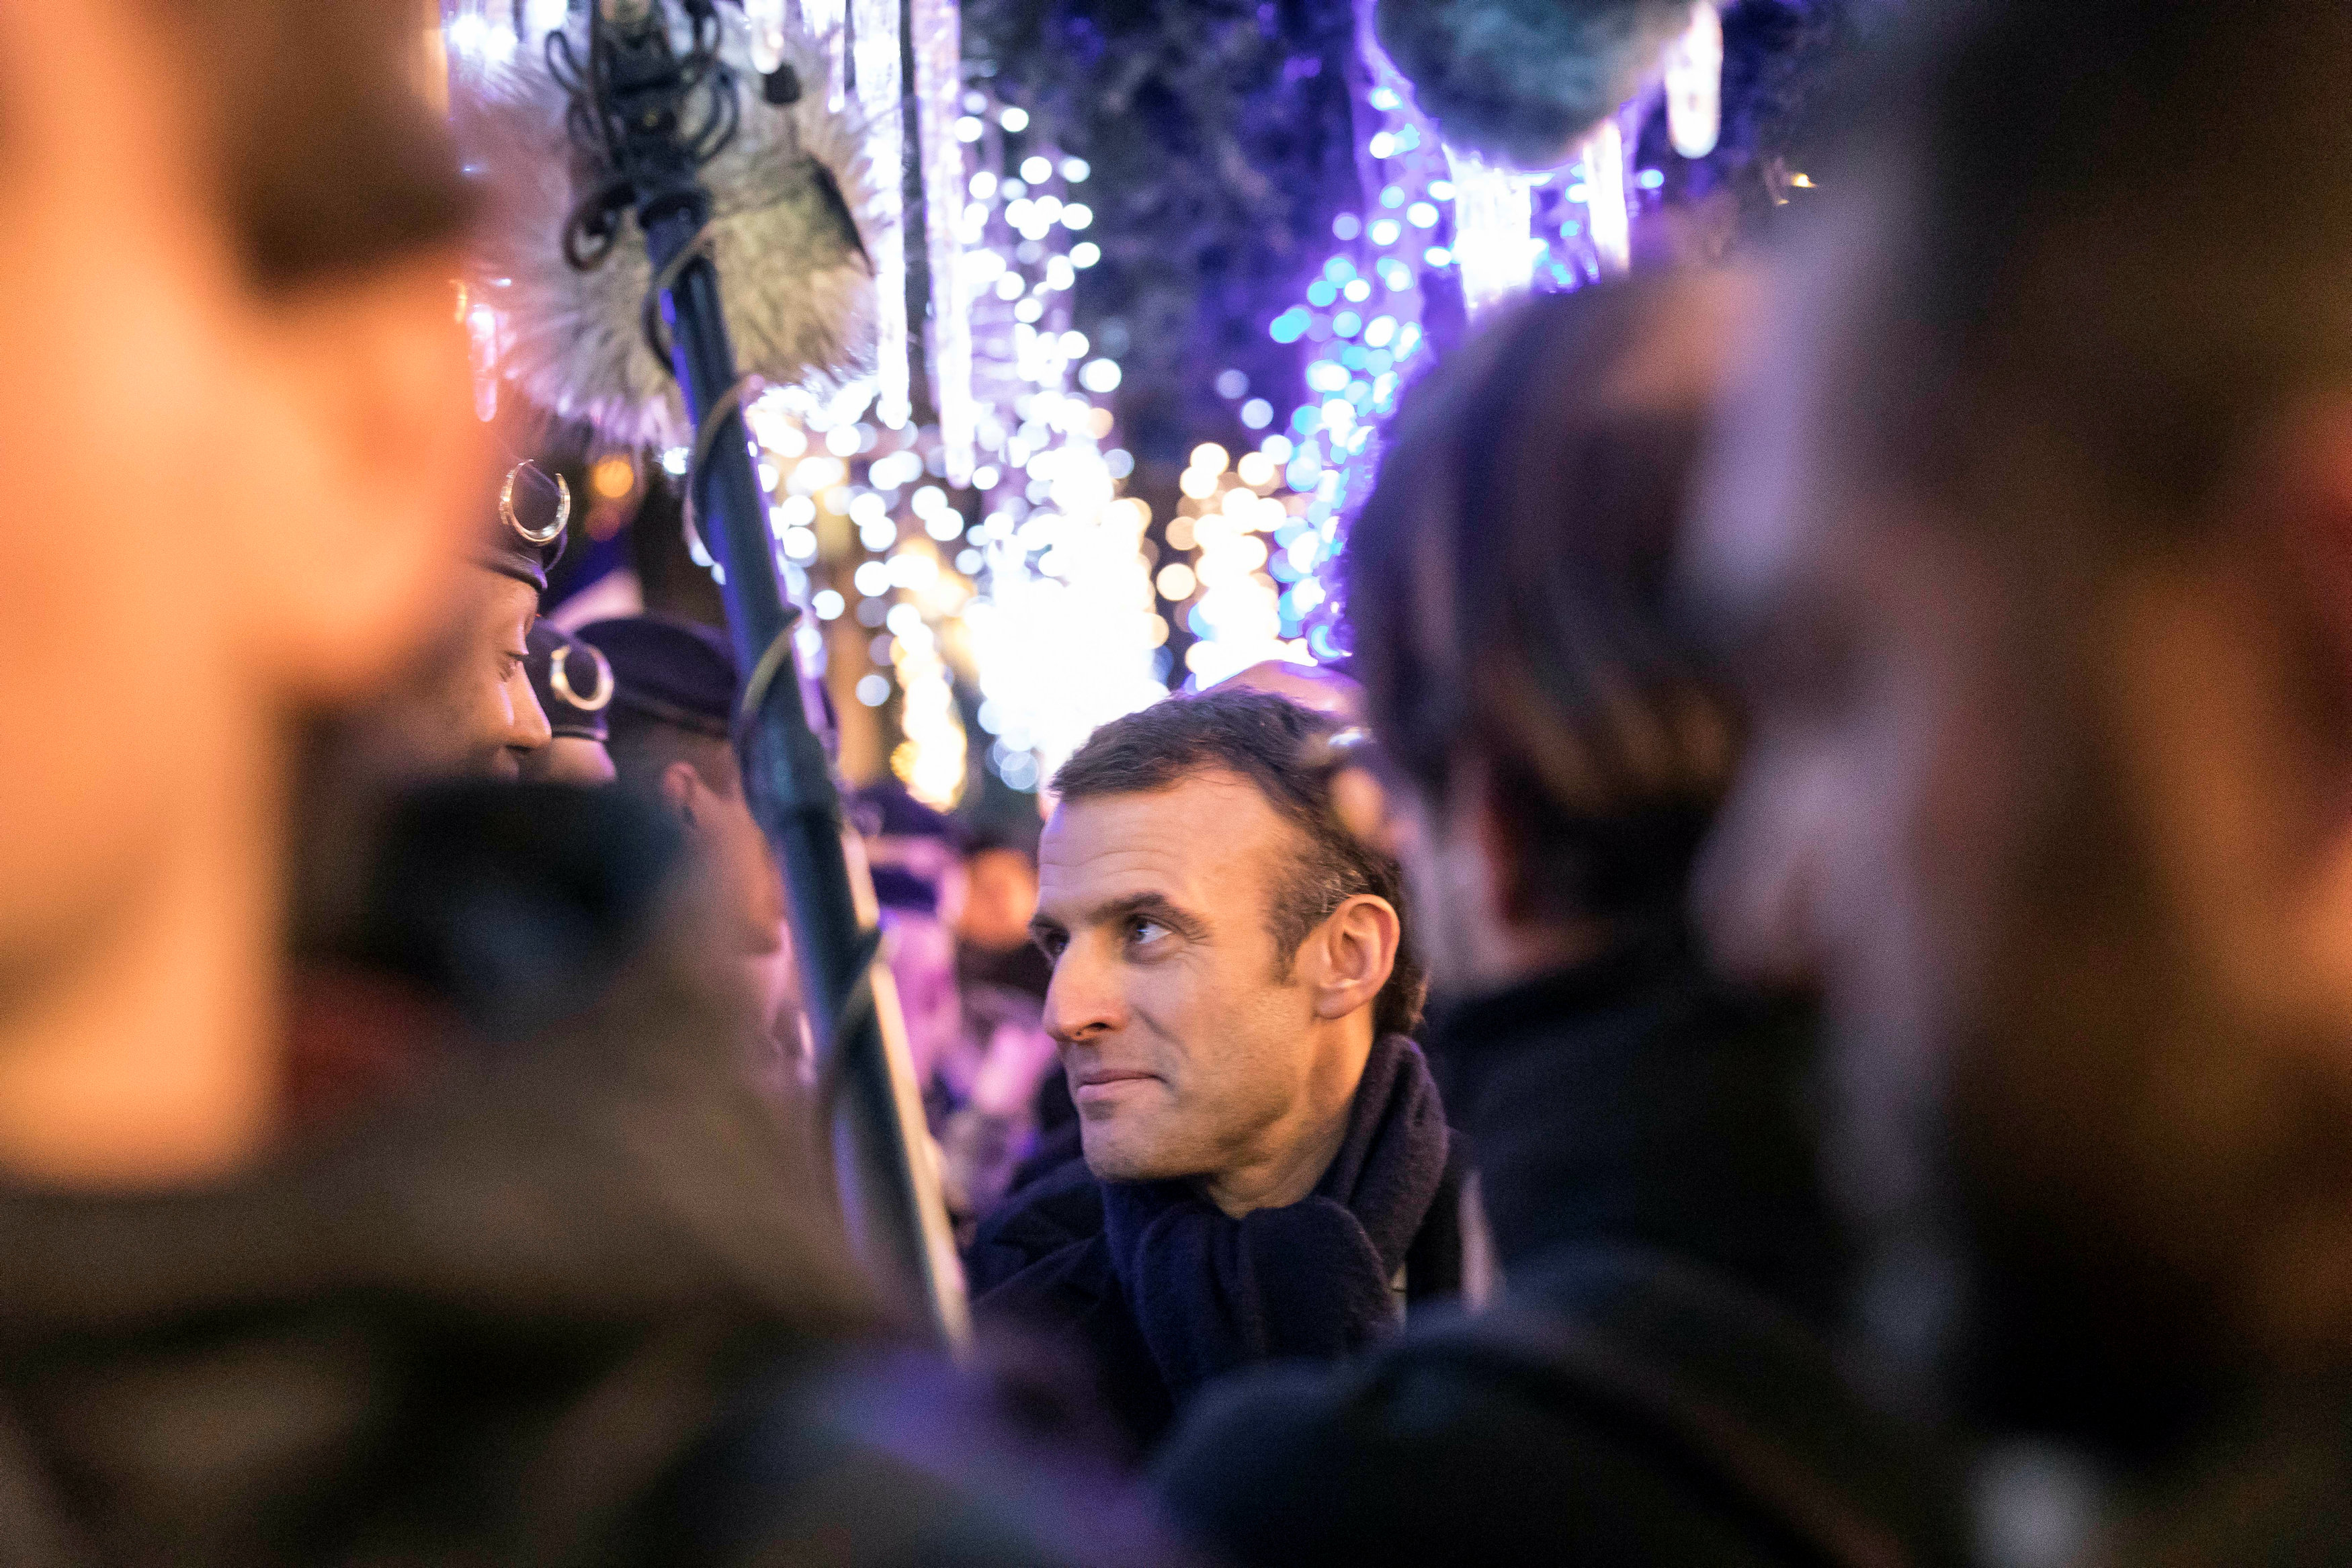 2018-12-14T201256Z_1737279034_RC16324A8BF0_RTRMADP_3_FRANCE-SECURITY-MACRON-CHRISTMAS